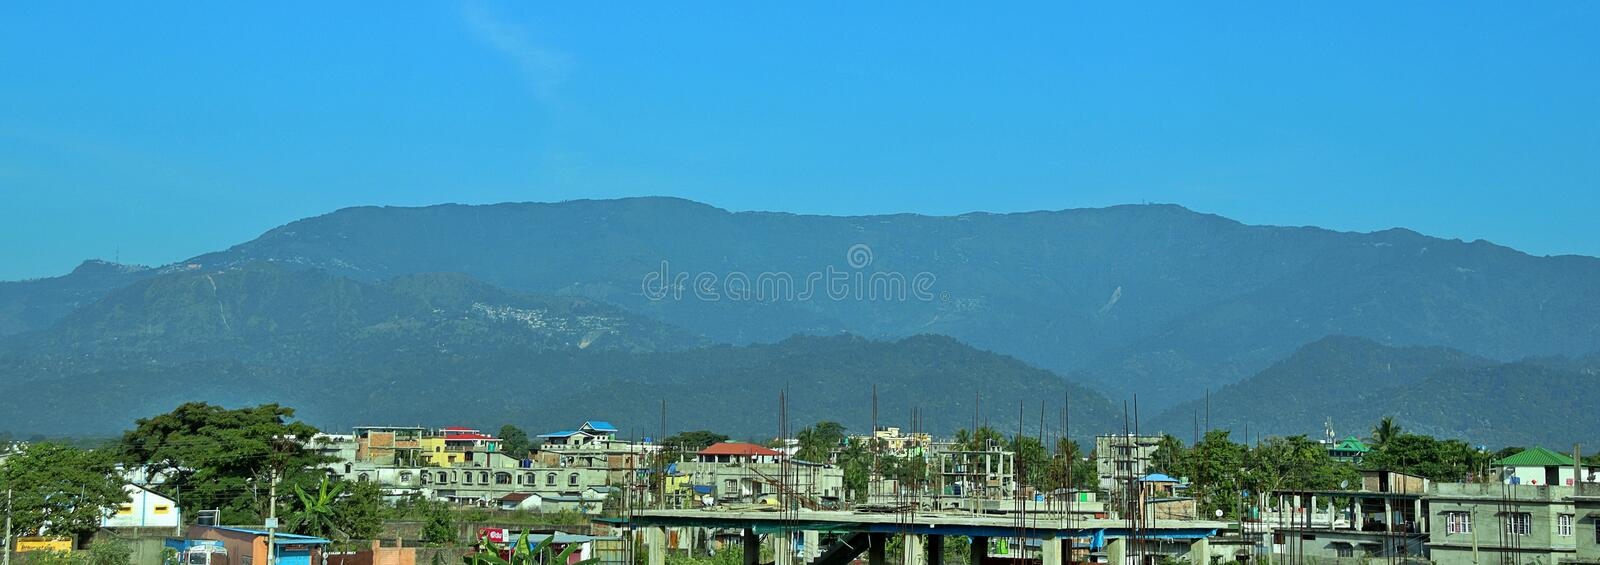 Beautiful view of the mountains and its foothills. A landscape shot in blue royalty free stock image